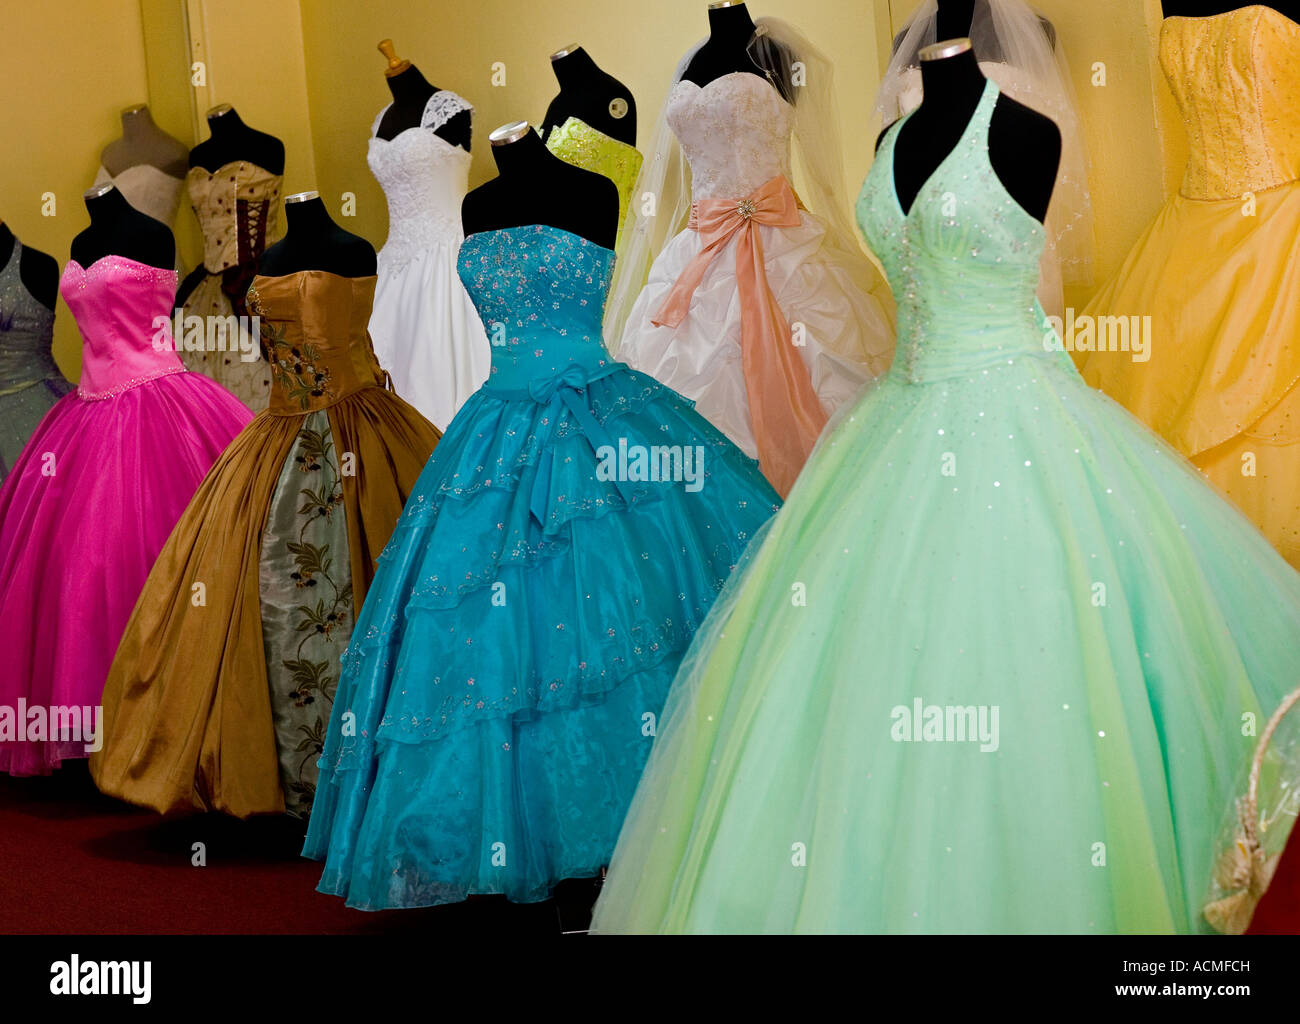 Gowns in downtown los angeles - Dresses For Weddings And Quinceanera Bridal Shop Broadway Downtown Los Angeles California United States Of America